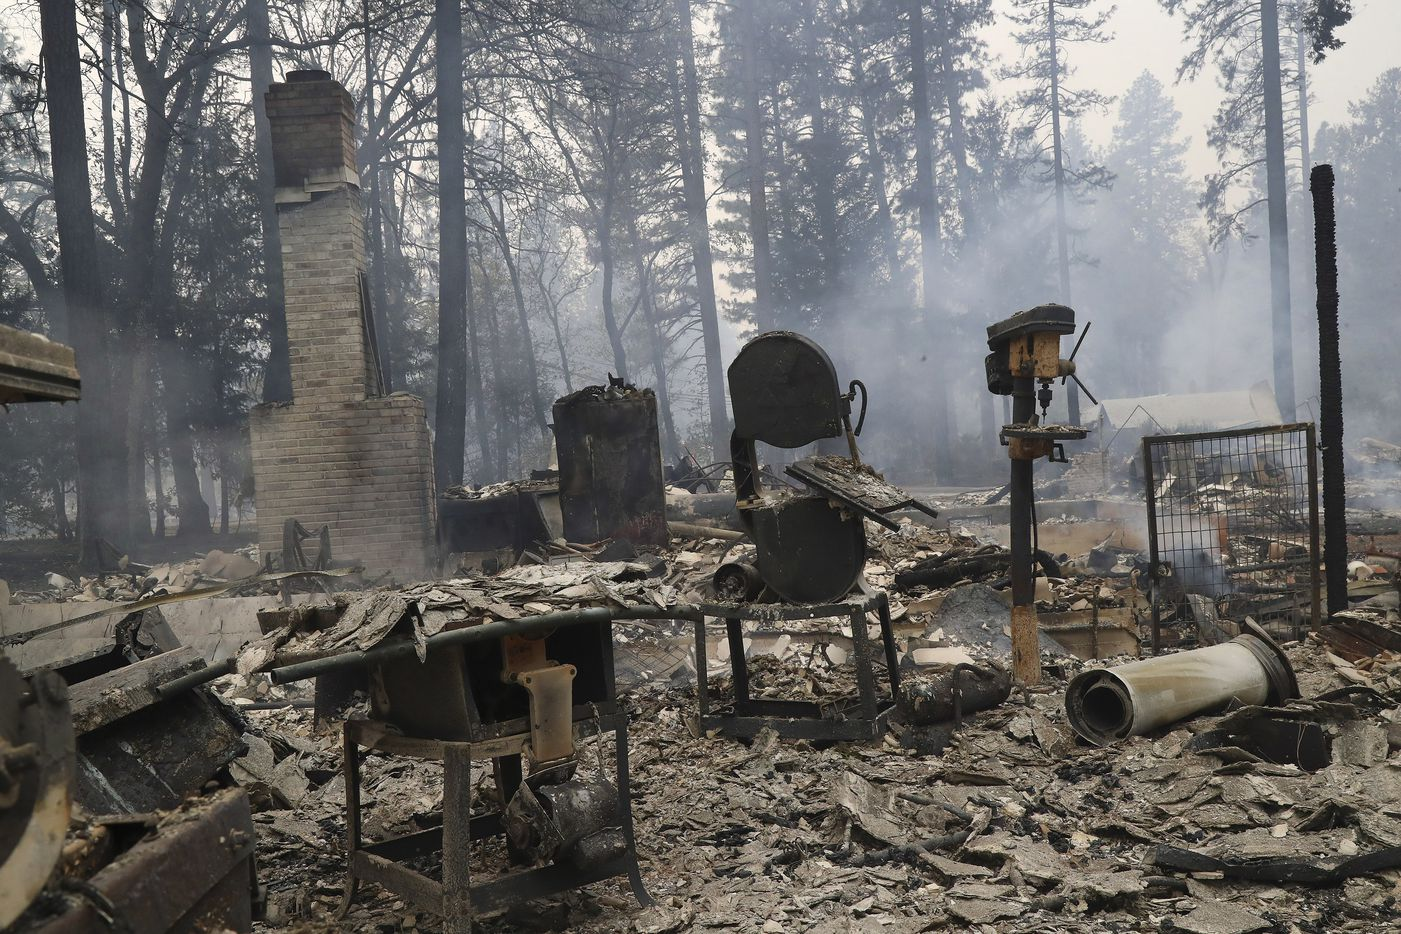 Remains of a home in Paradise, Calif., after the Camp Fire tore through the town, Nov. 9, 2018. Of the 23 people known on Nov. 11 to have been killed by the fire in Paradise, six had died in their cars.